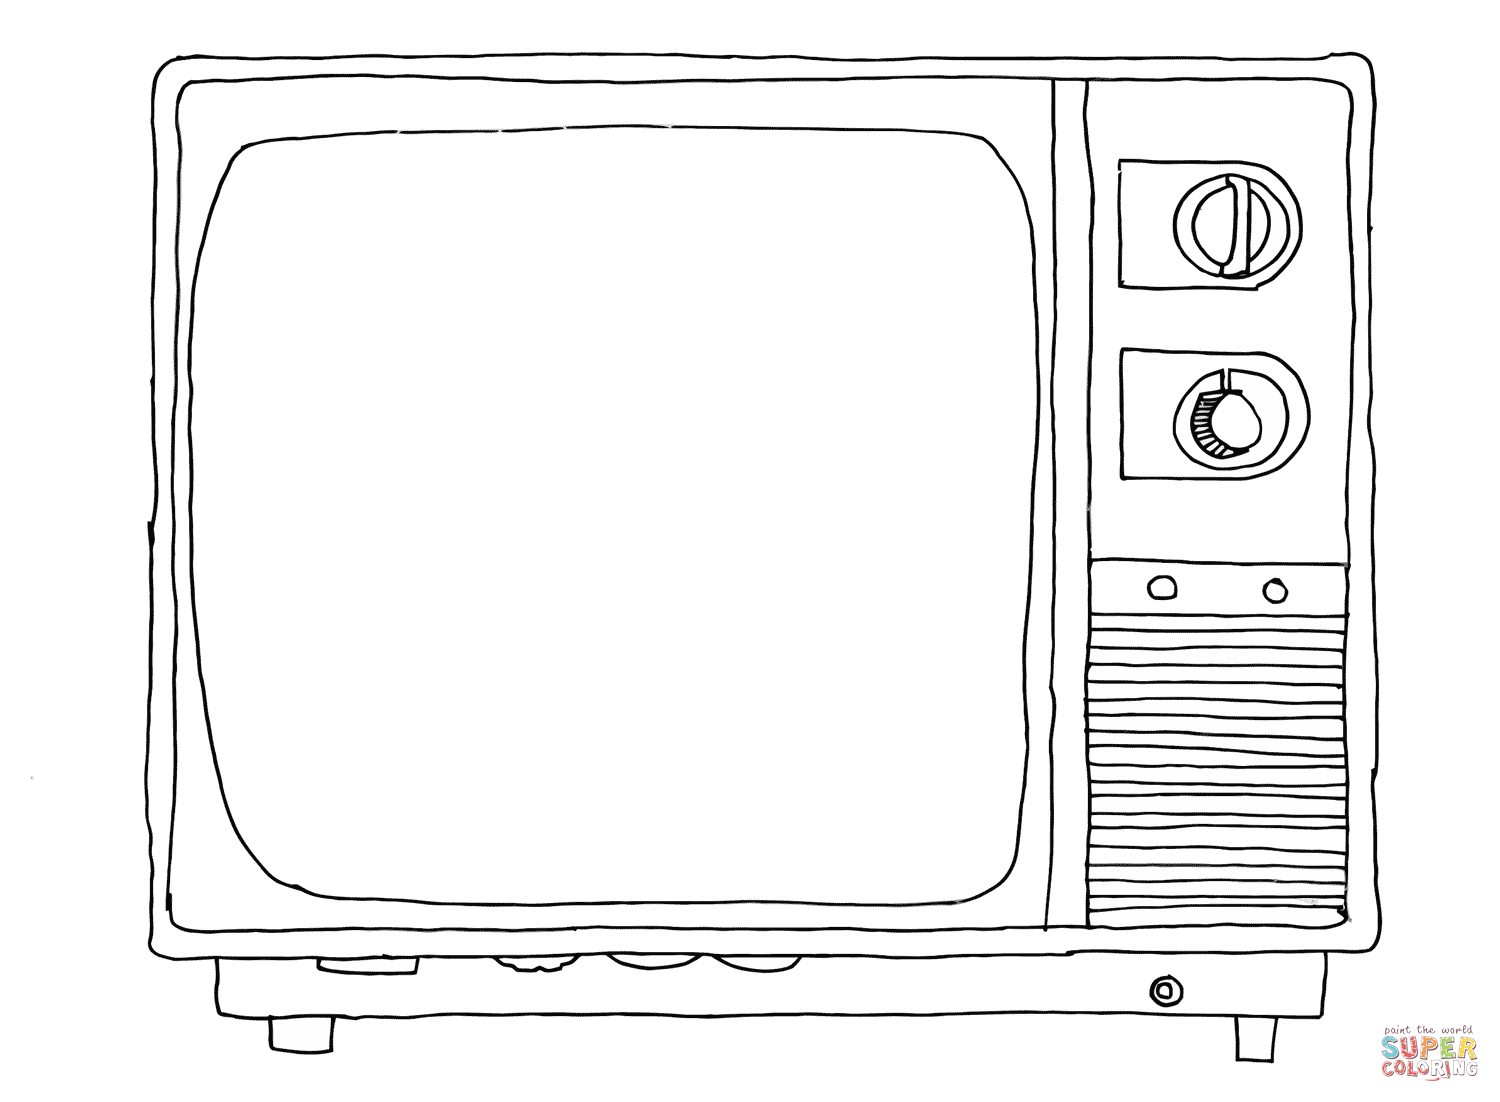 Tv Seccion Series Coloring Pages Diy Agenda Coloring Pages For Kids